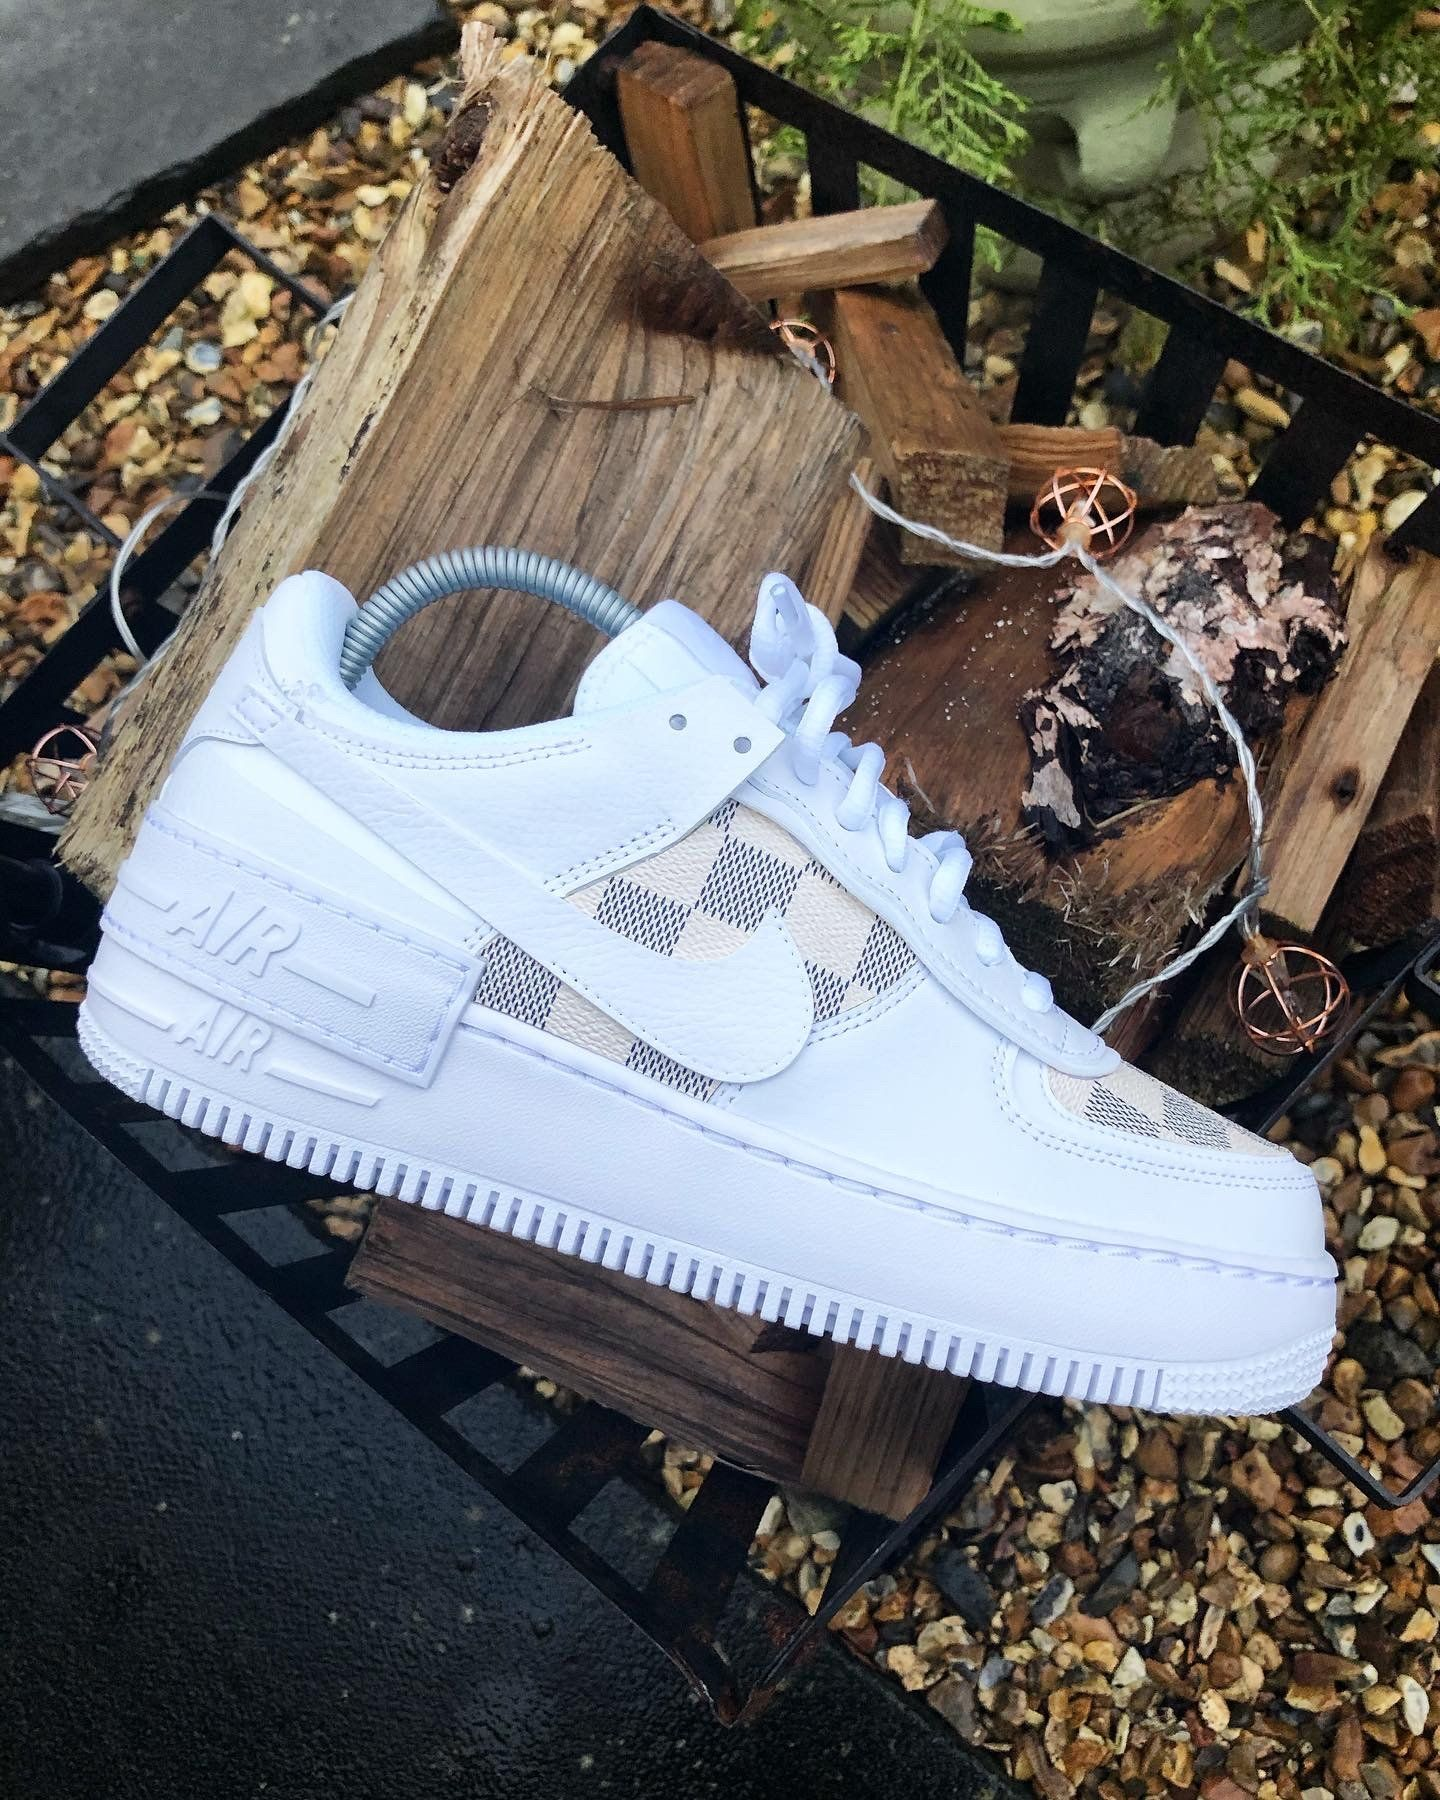 White Damier Louis Vuitton Af1 Shadow In 2020 Shoe Company Af1